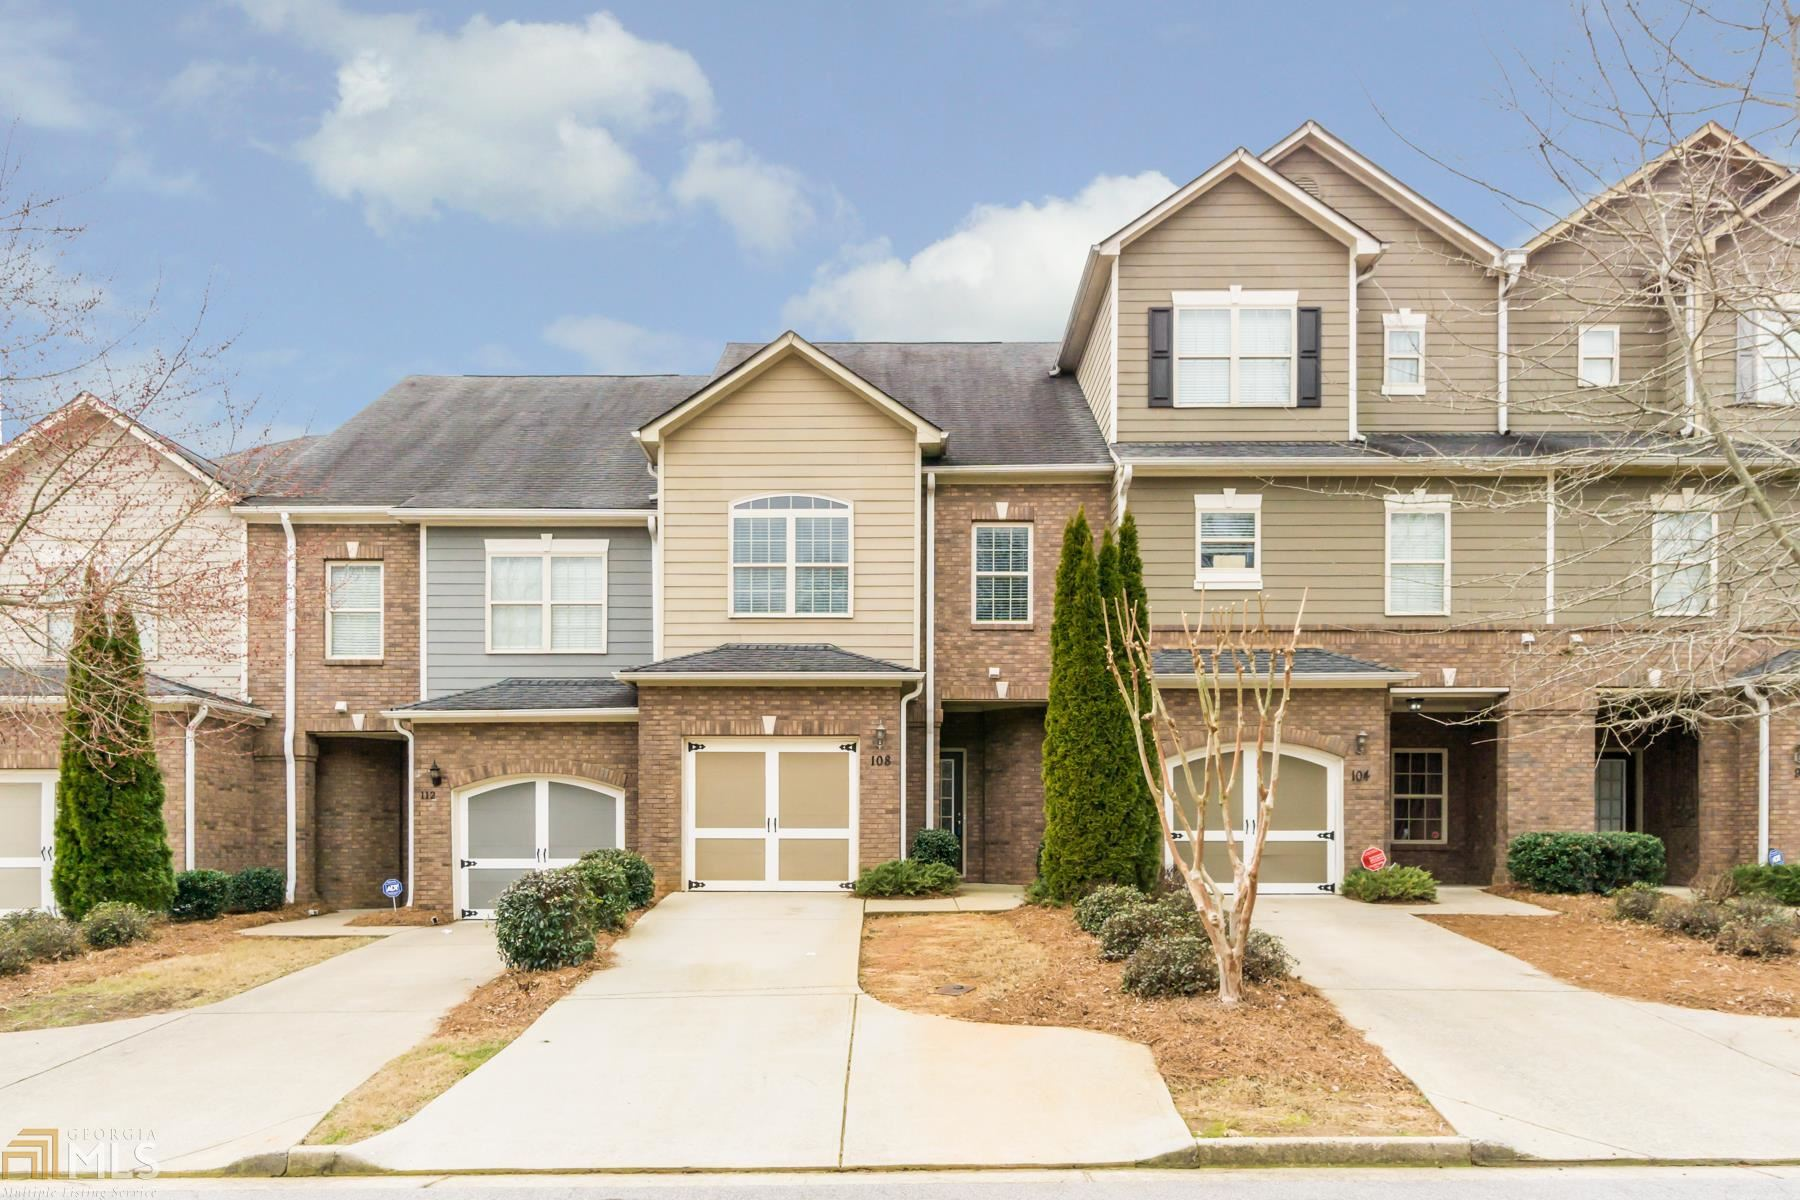 108 Trailside Cir, Hiram, GA 30141 - #: 8730198